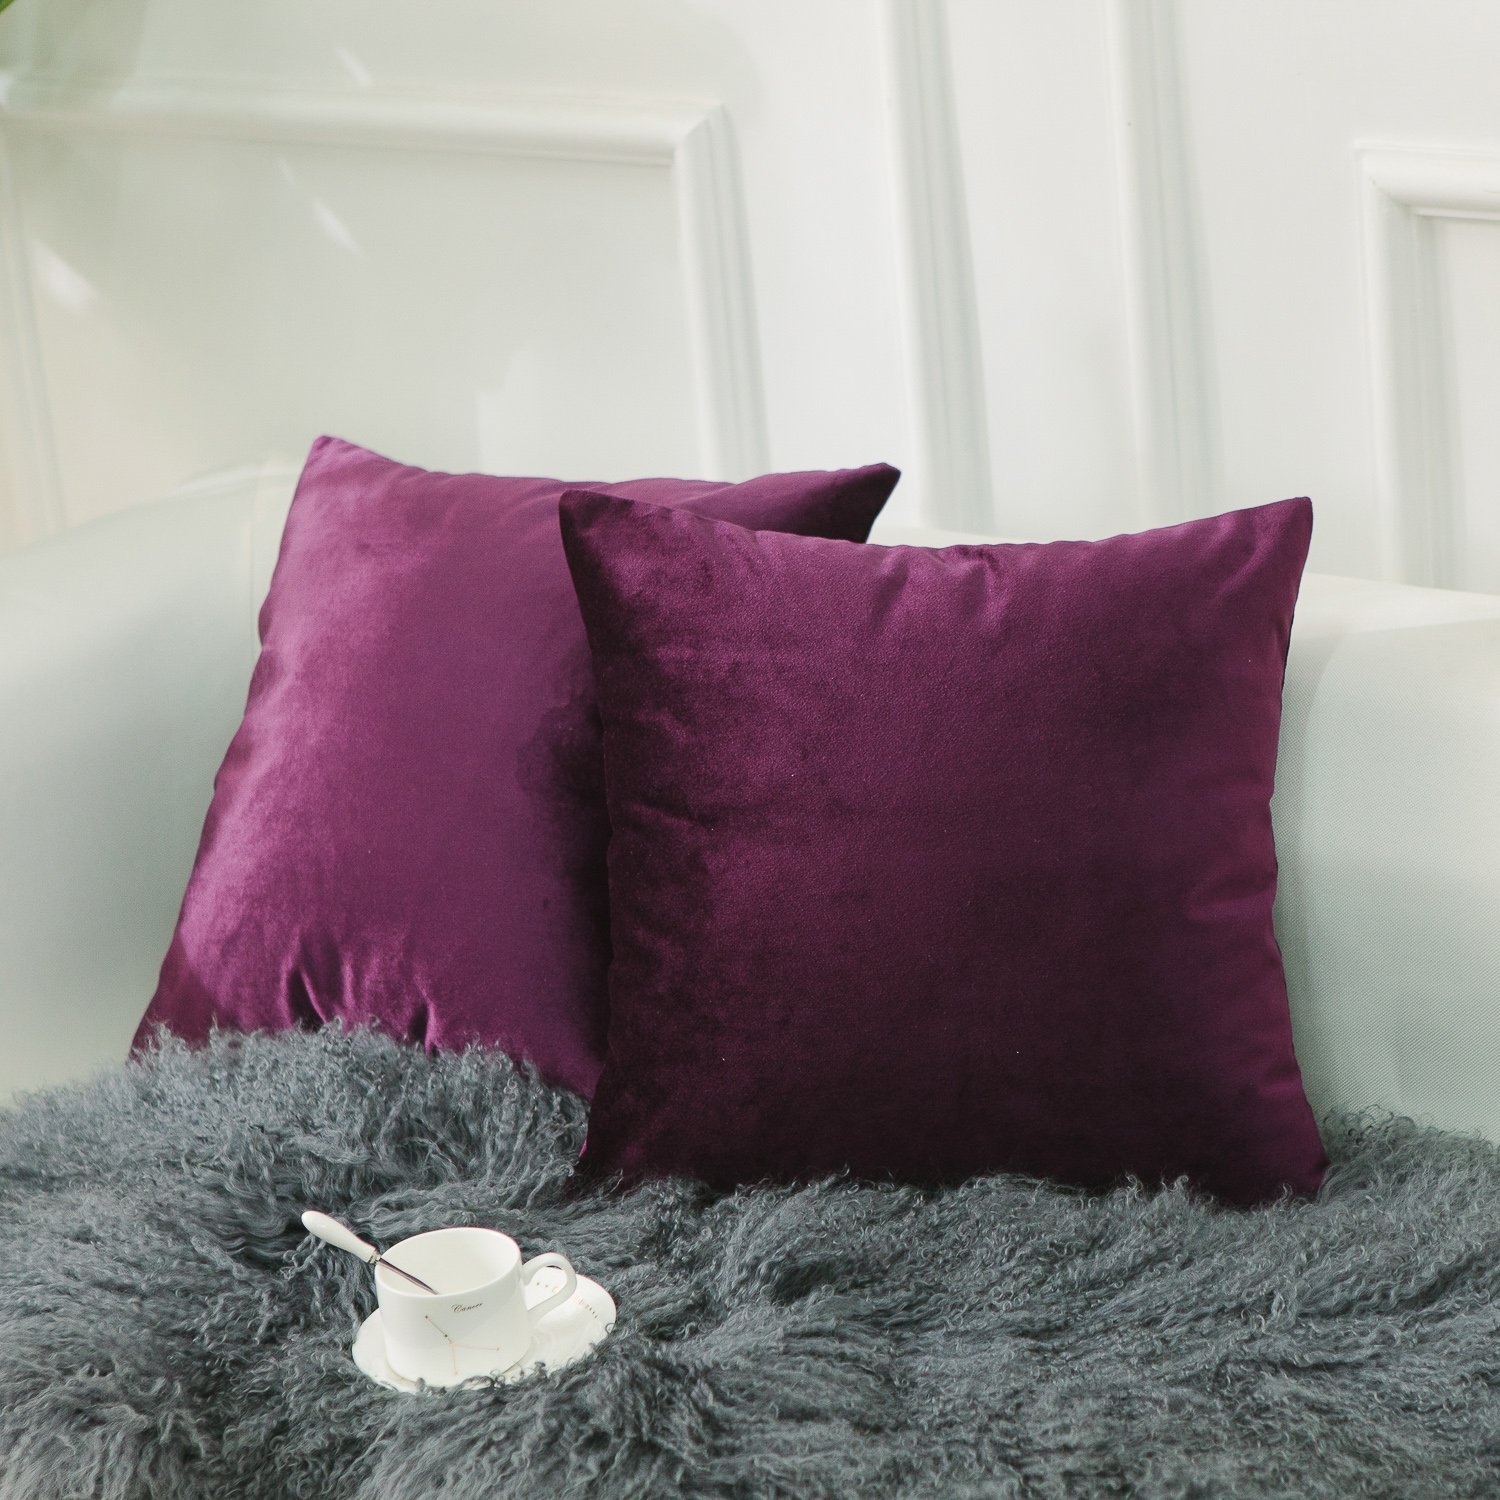 HOME BRILLIANT 2 Pack Plain Velvet Throw Pillow Covers Decorative Square Cushion Covers PillowCases Set for Couch Bench Bed Car, 45x45 cm(18''x18''), Eggplant